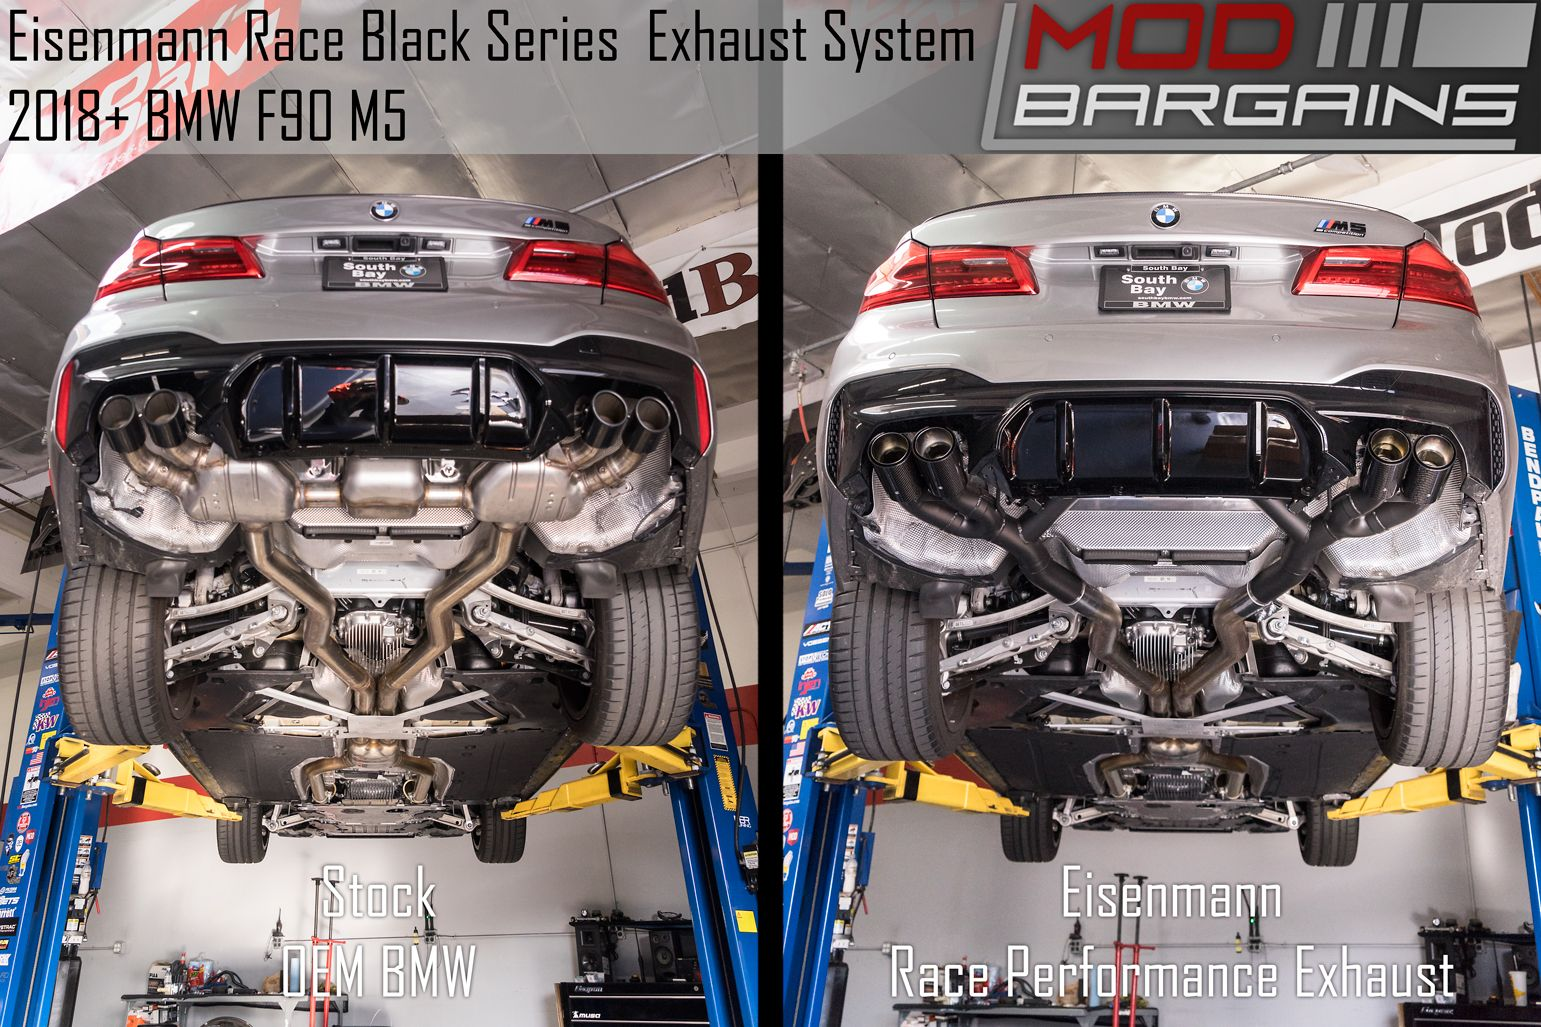 BMW F90 M5 Eisenmann Exhaust Black Series Stock vs Eisenmann